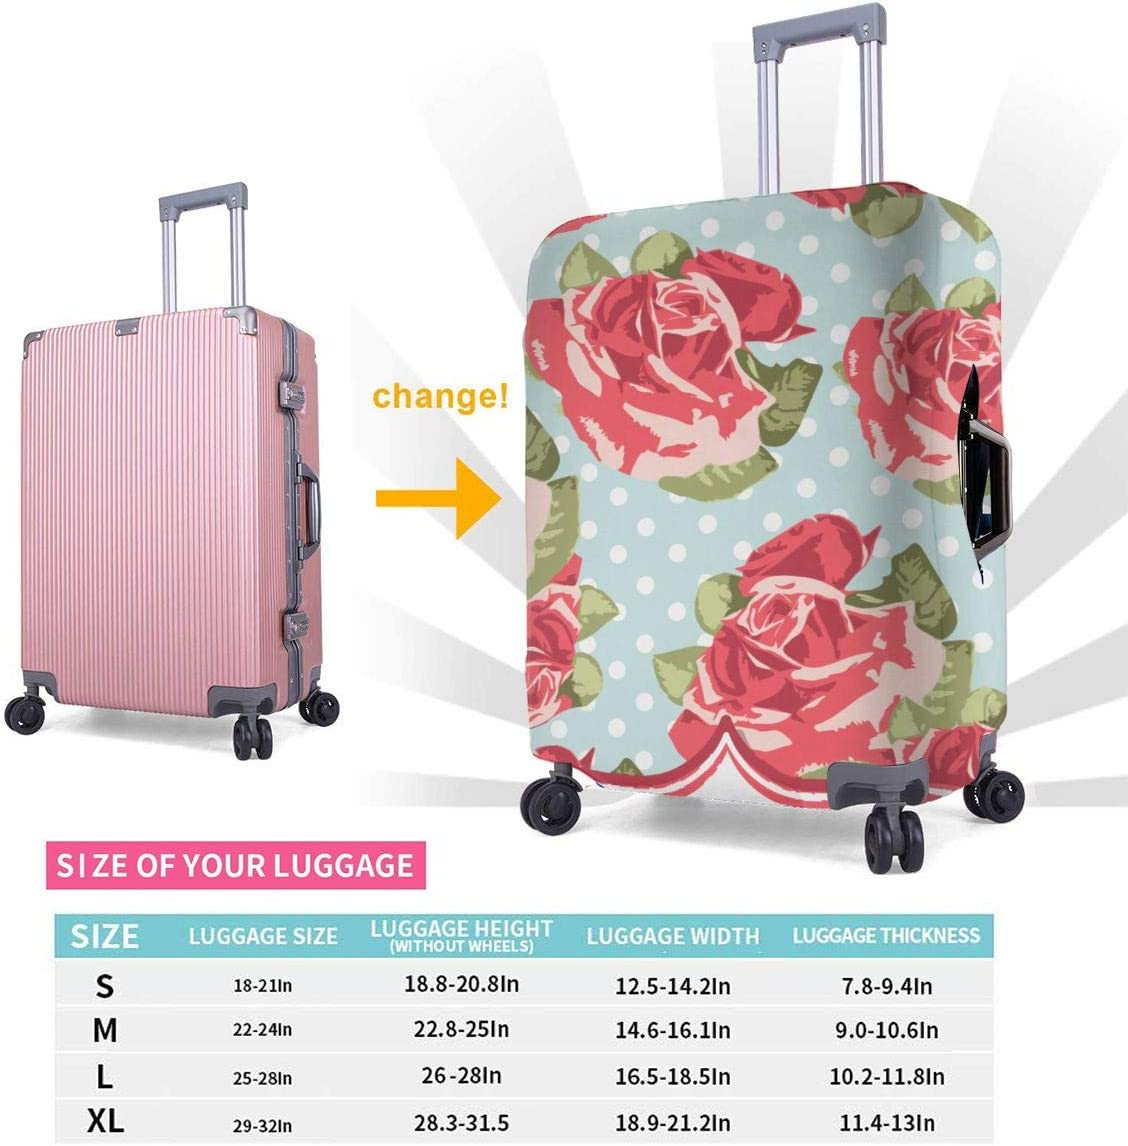 Shabby Chic Rose Patterns4 XL Luggage Covers Travel Luggage Cover Spandex Travel Luggage Cover Suitcase Protector Fits 18-32 Inch Luggage Case